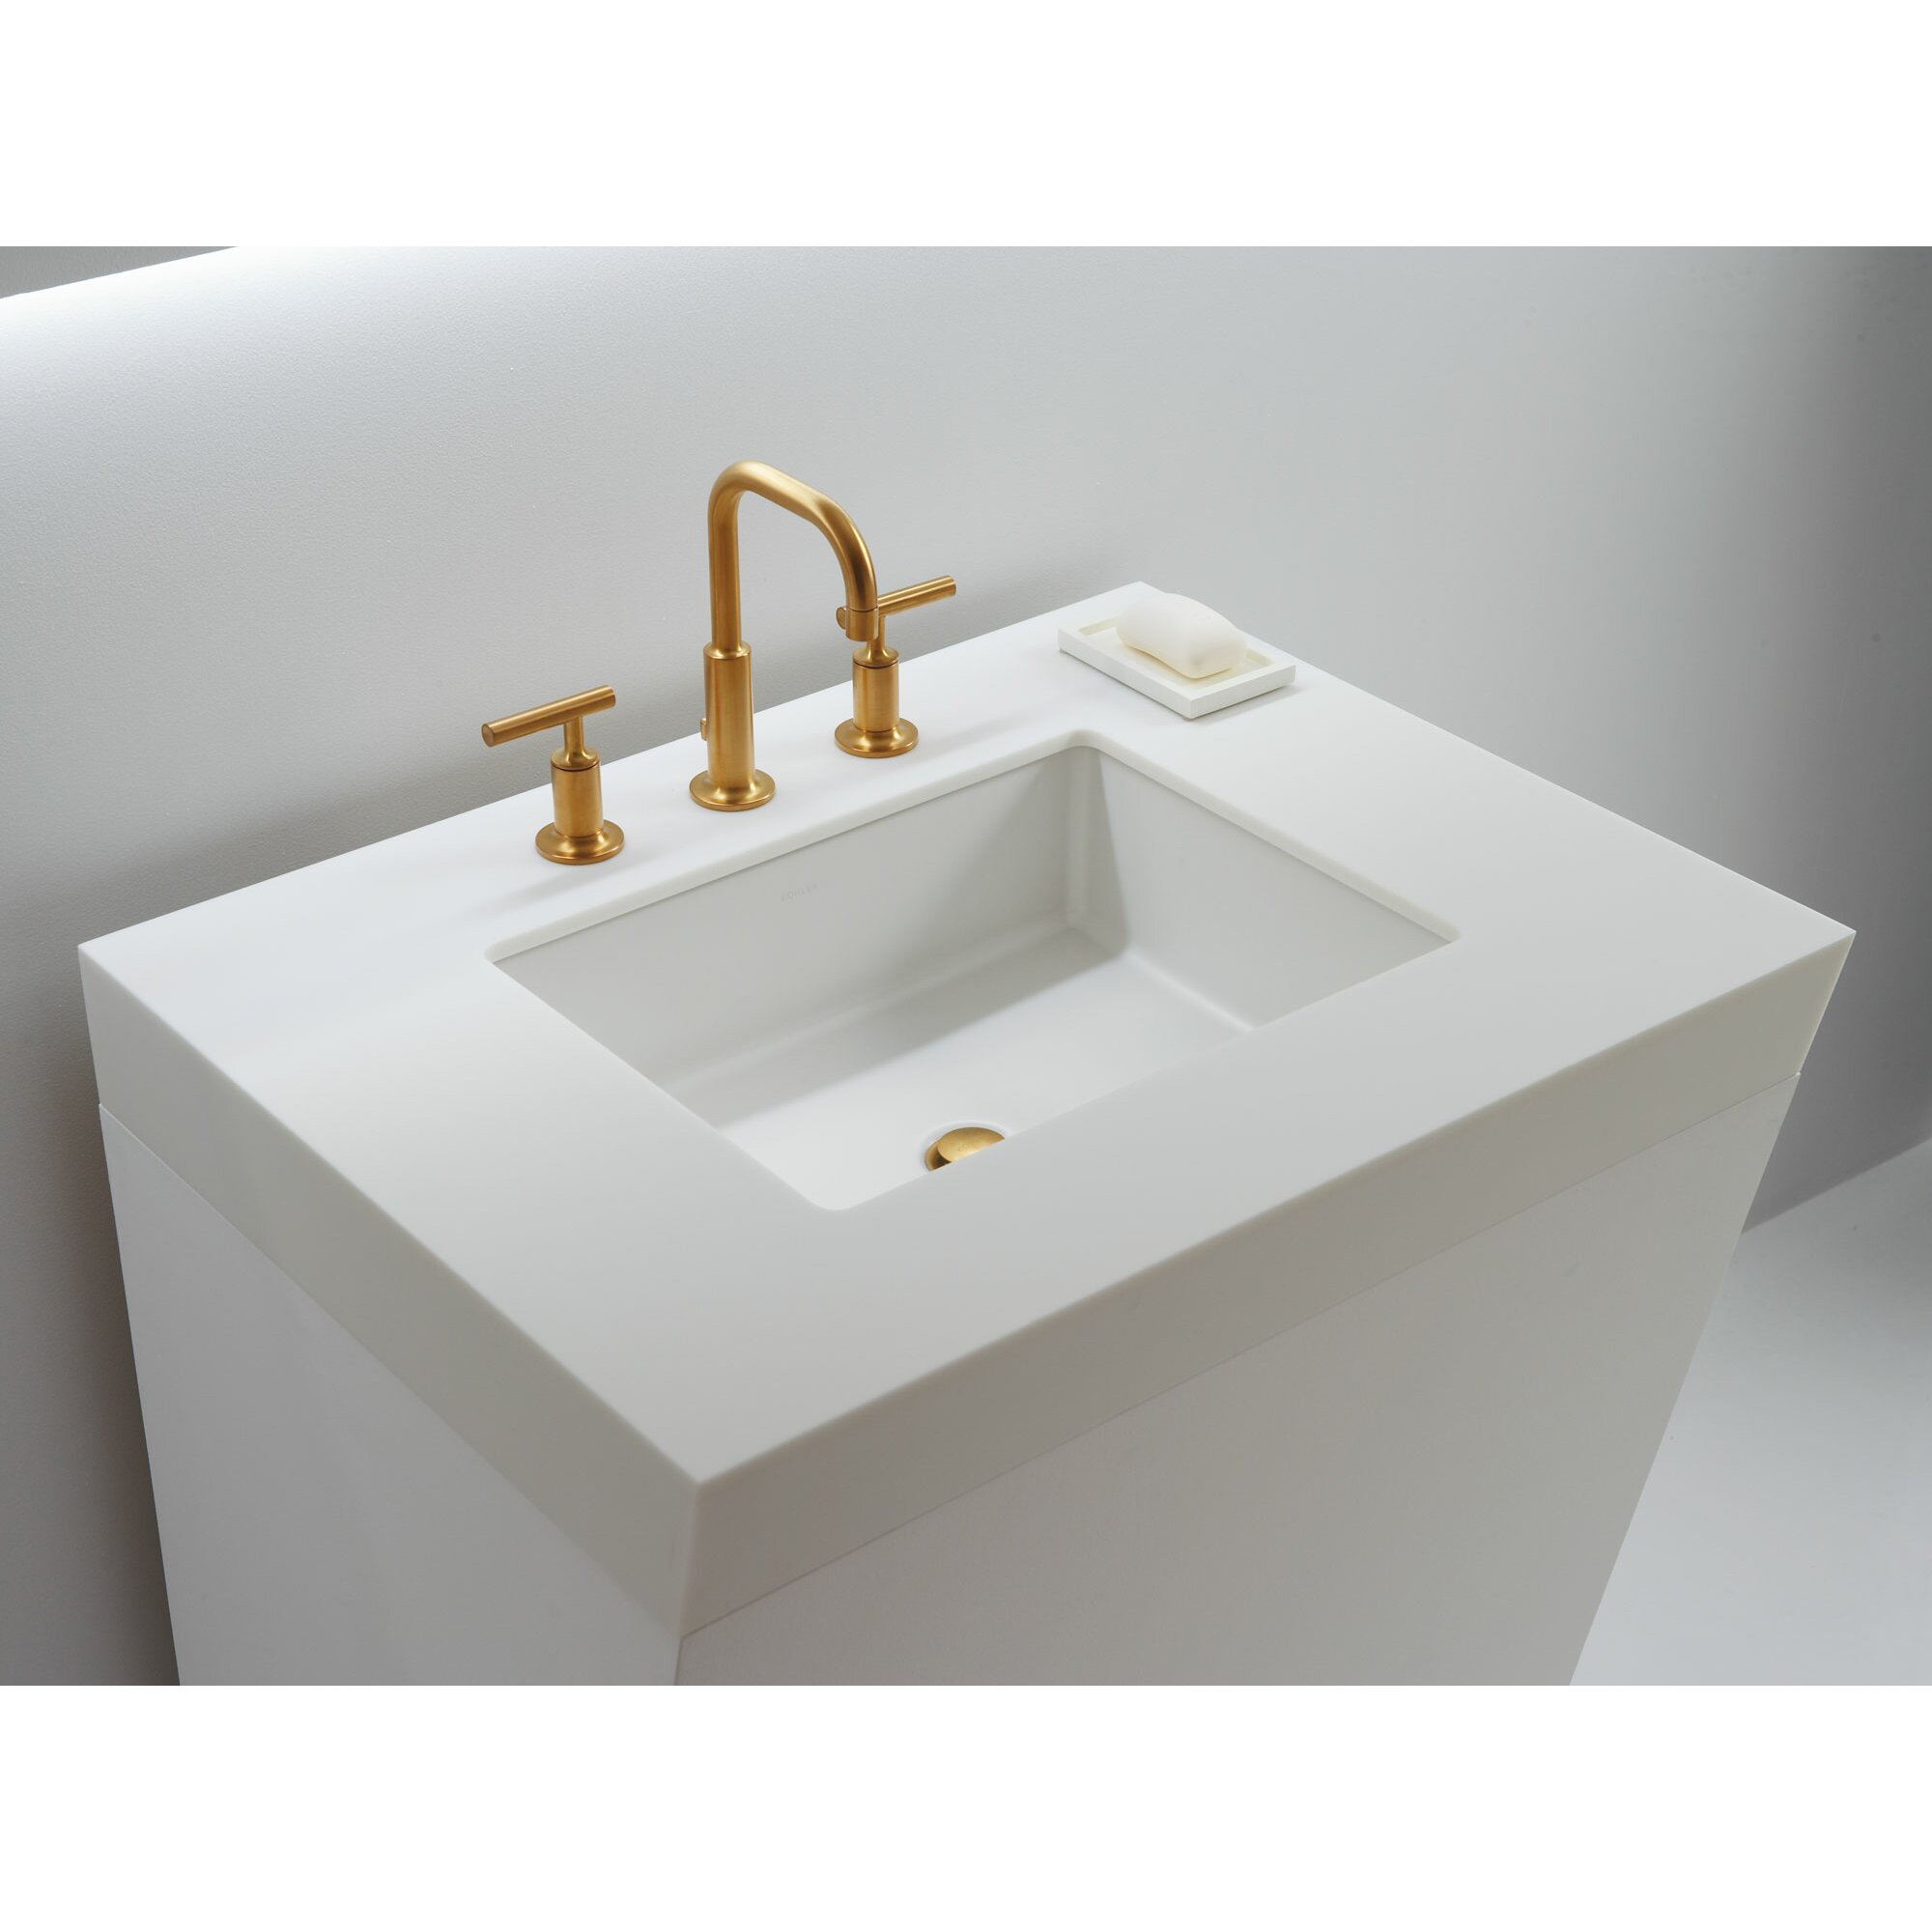 Nice Bathroom Sinks : kohler verticyl rectangular undermount bathroom sink with overflow